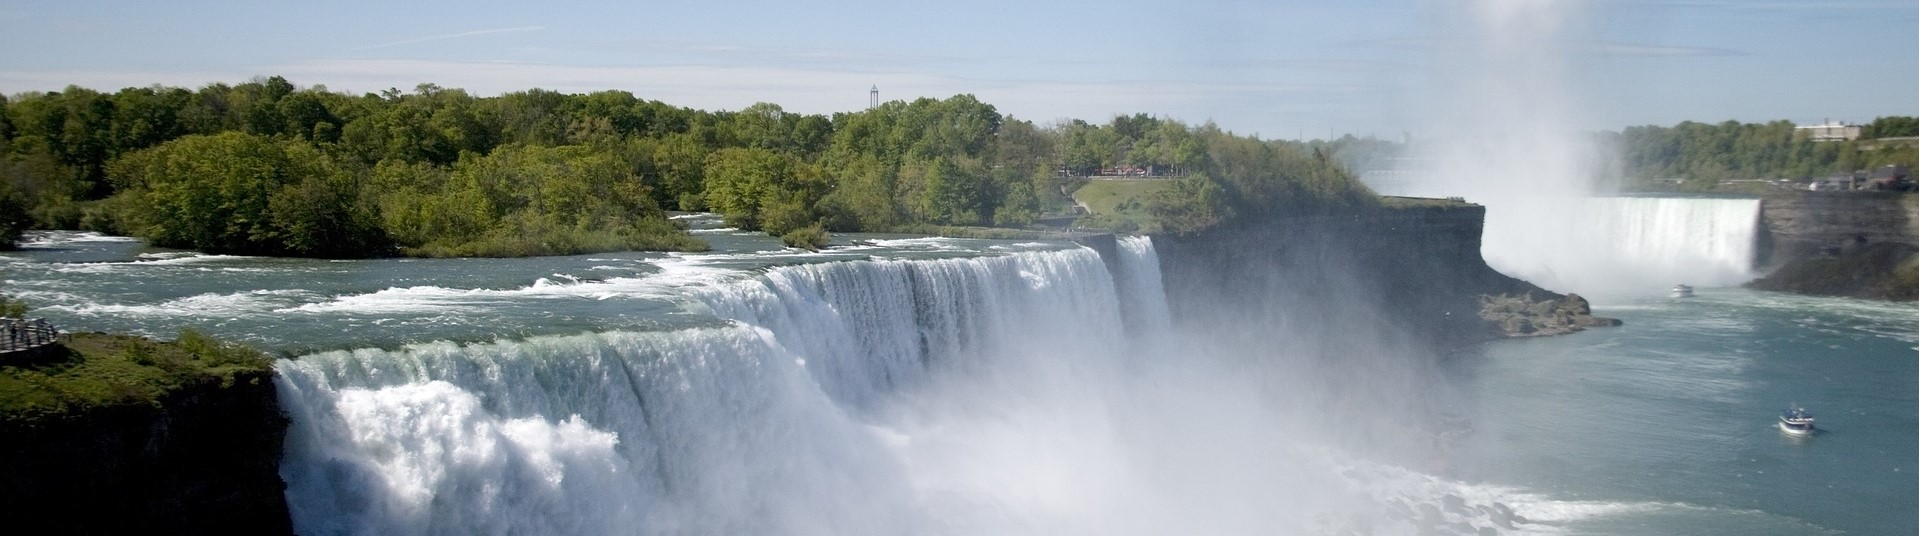 The Famous Niagara Falls of New York - CarDonations4Cancer.org